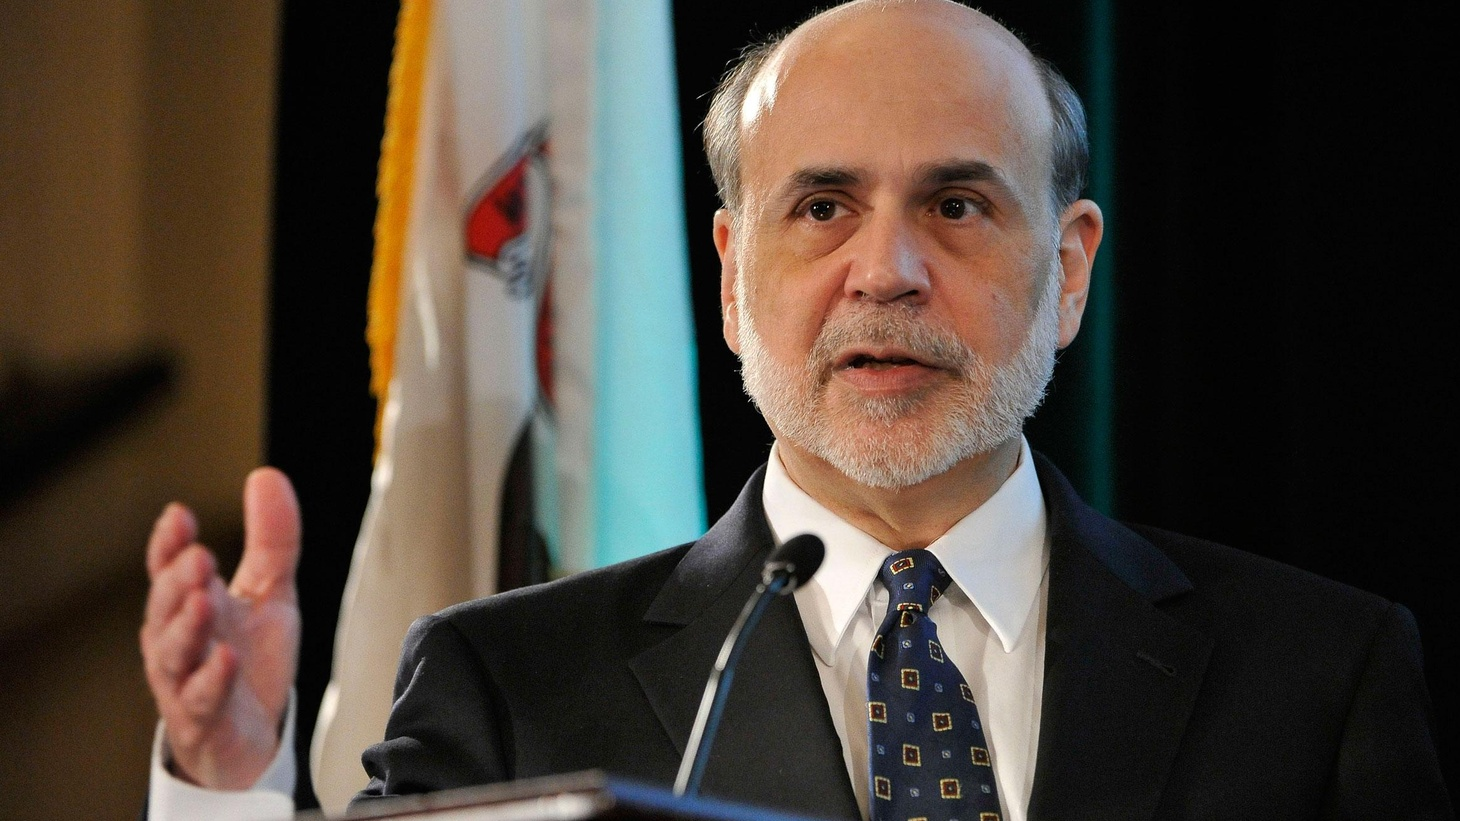 Fed Chair Bernanke takes a jab at partisan politics but offers no steps to bolster the economy. Also, Rick Perry's surge in the polls, and VP Dick Cheney's memoir...